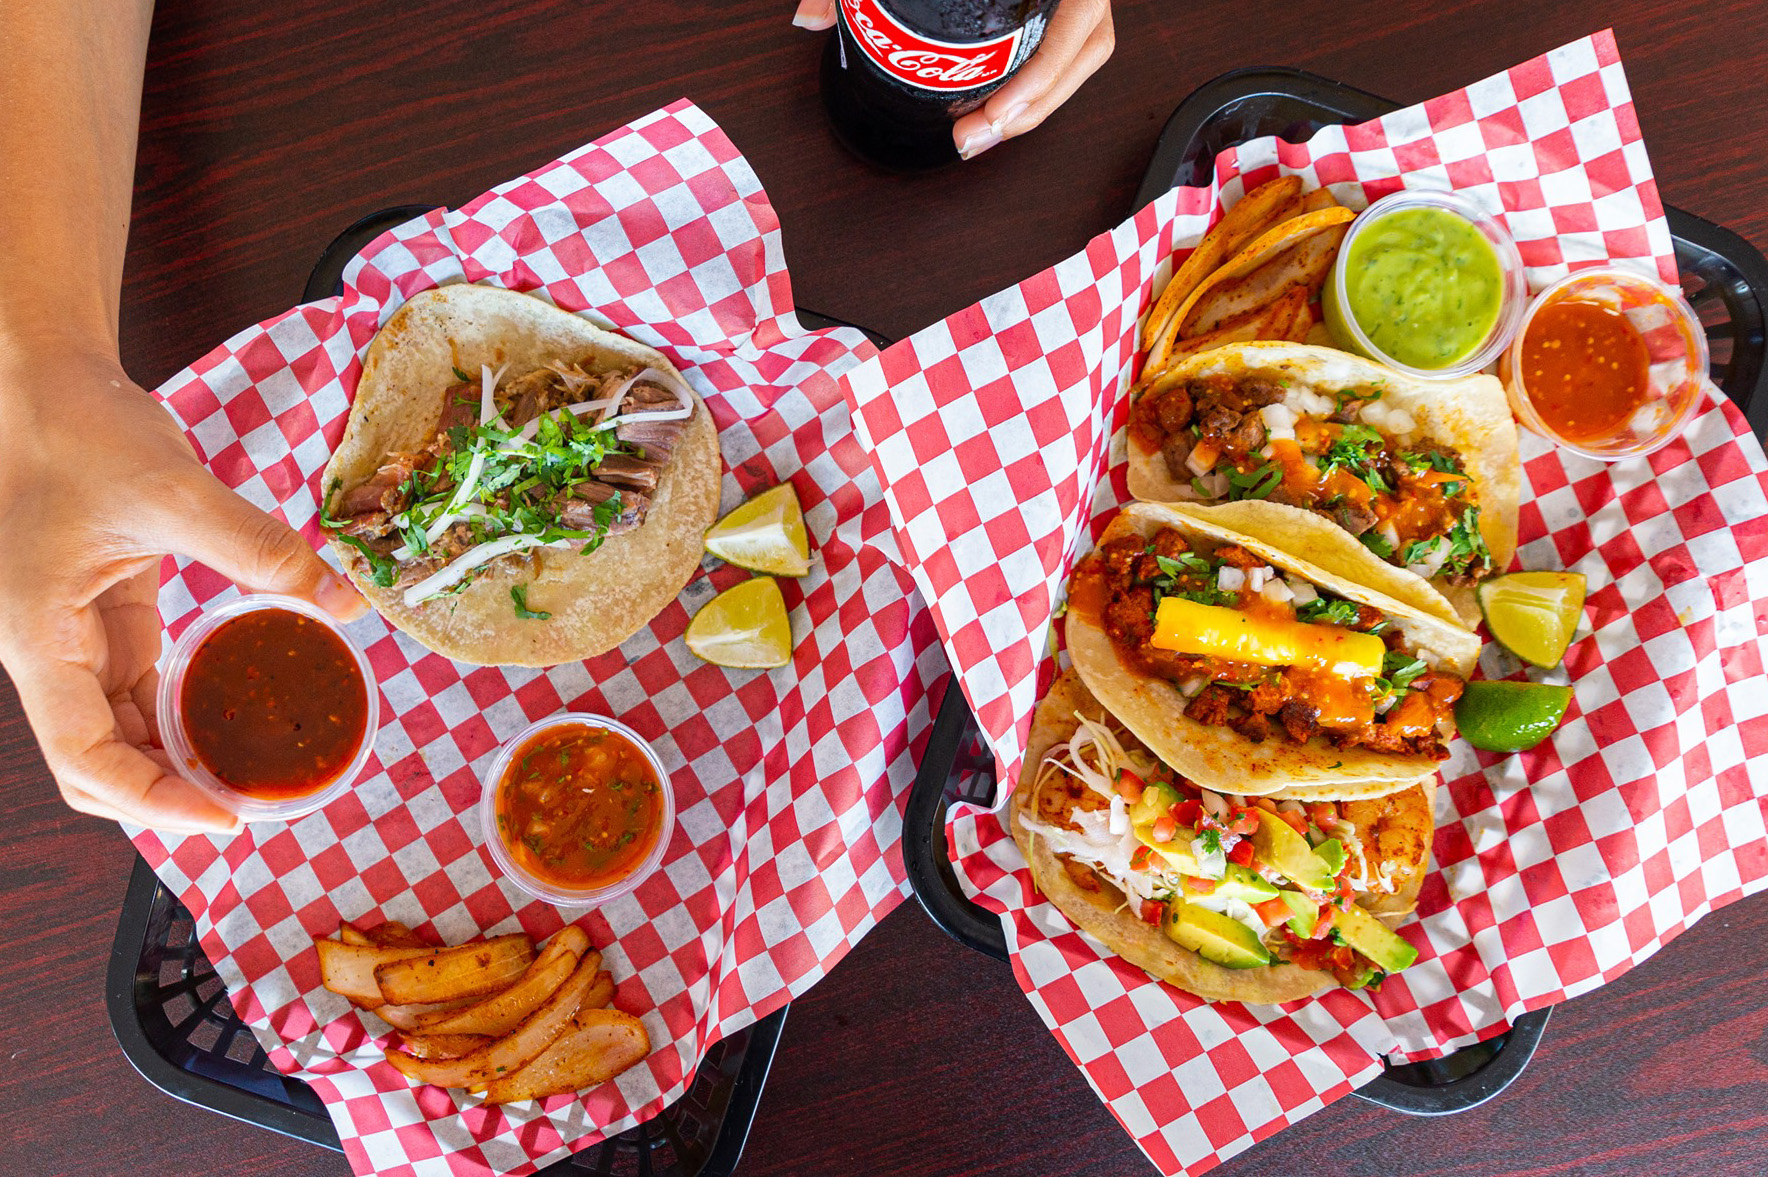 Lesser-Known Taco Spots to Impress Your Date